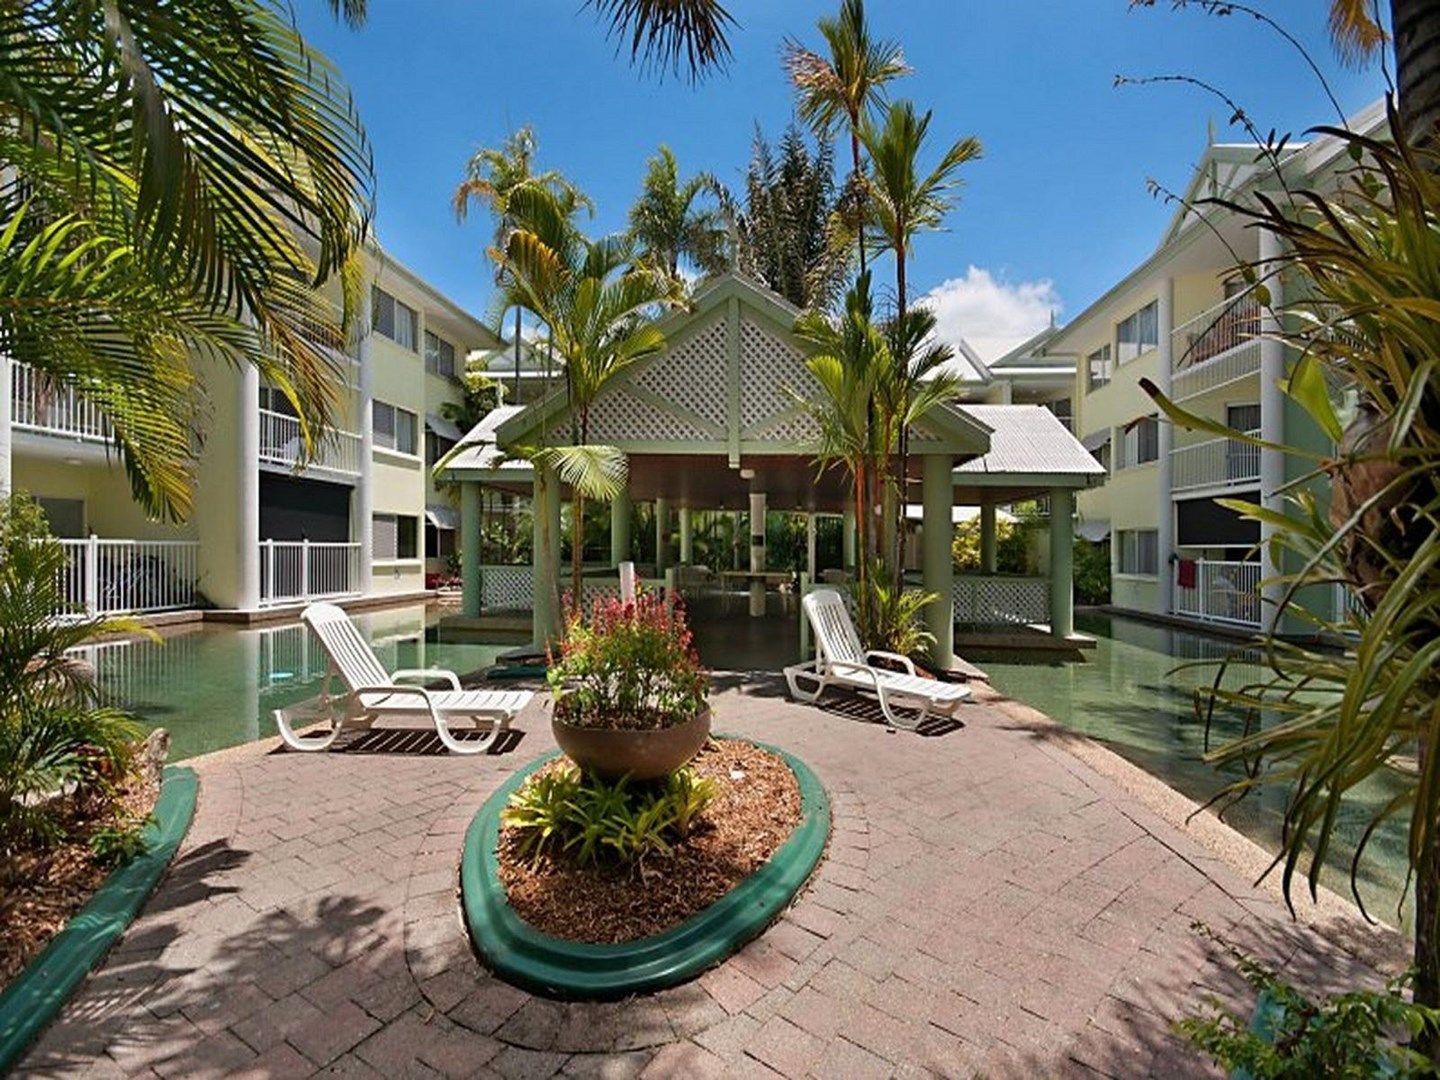 6/38 Cairns Street, Cairns North QLD 4870, Image 6